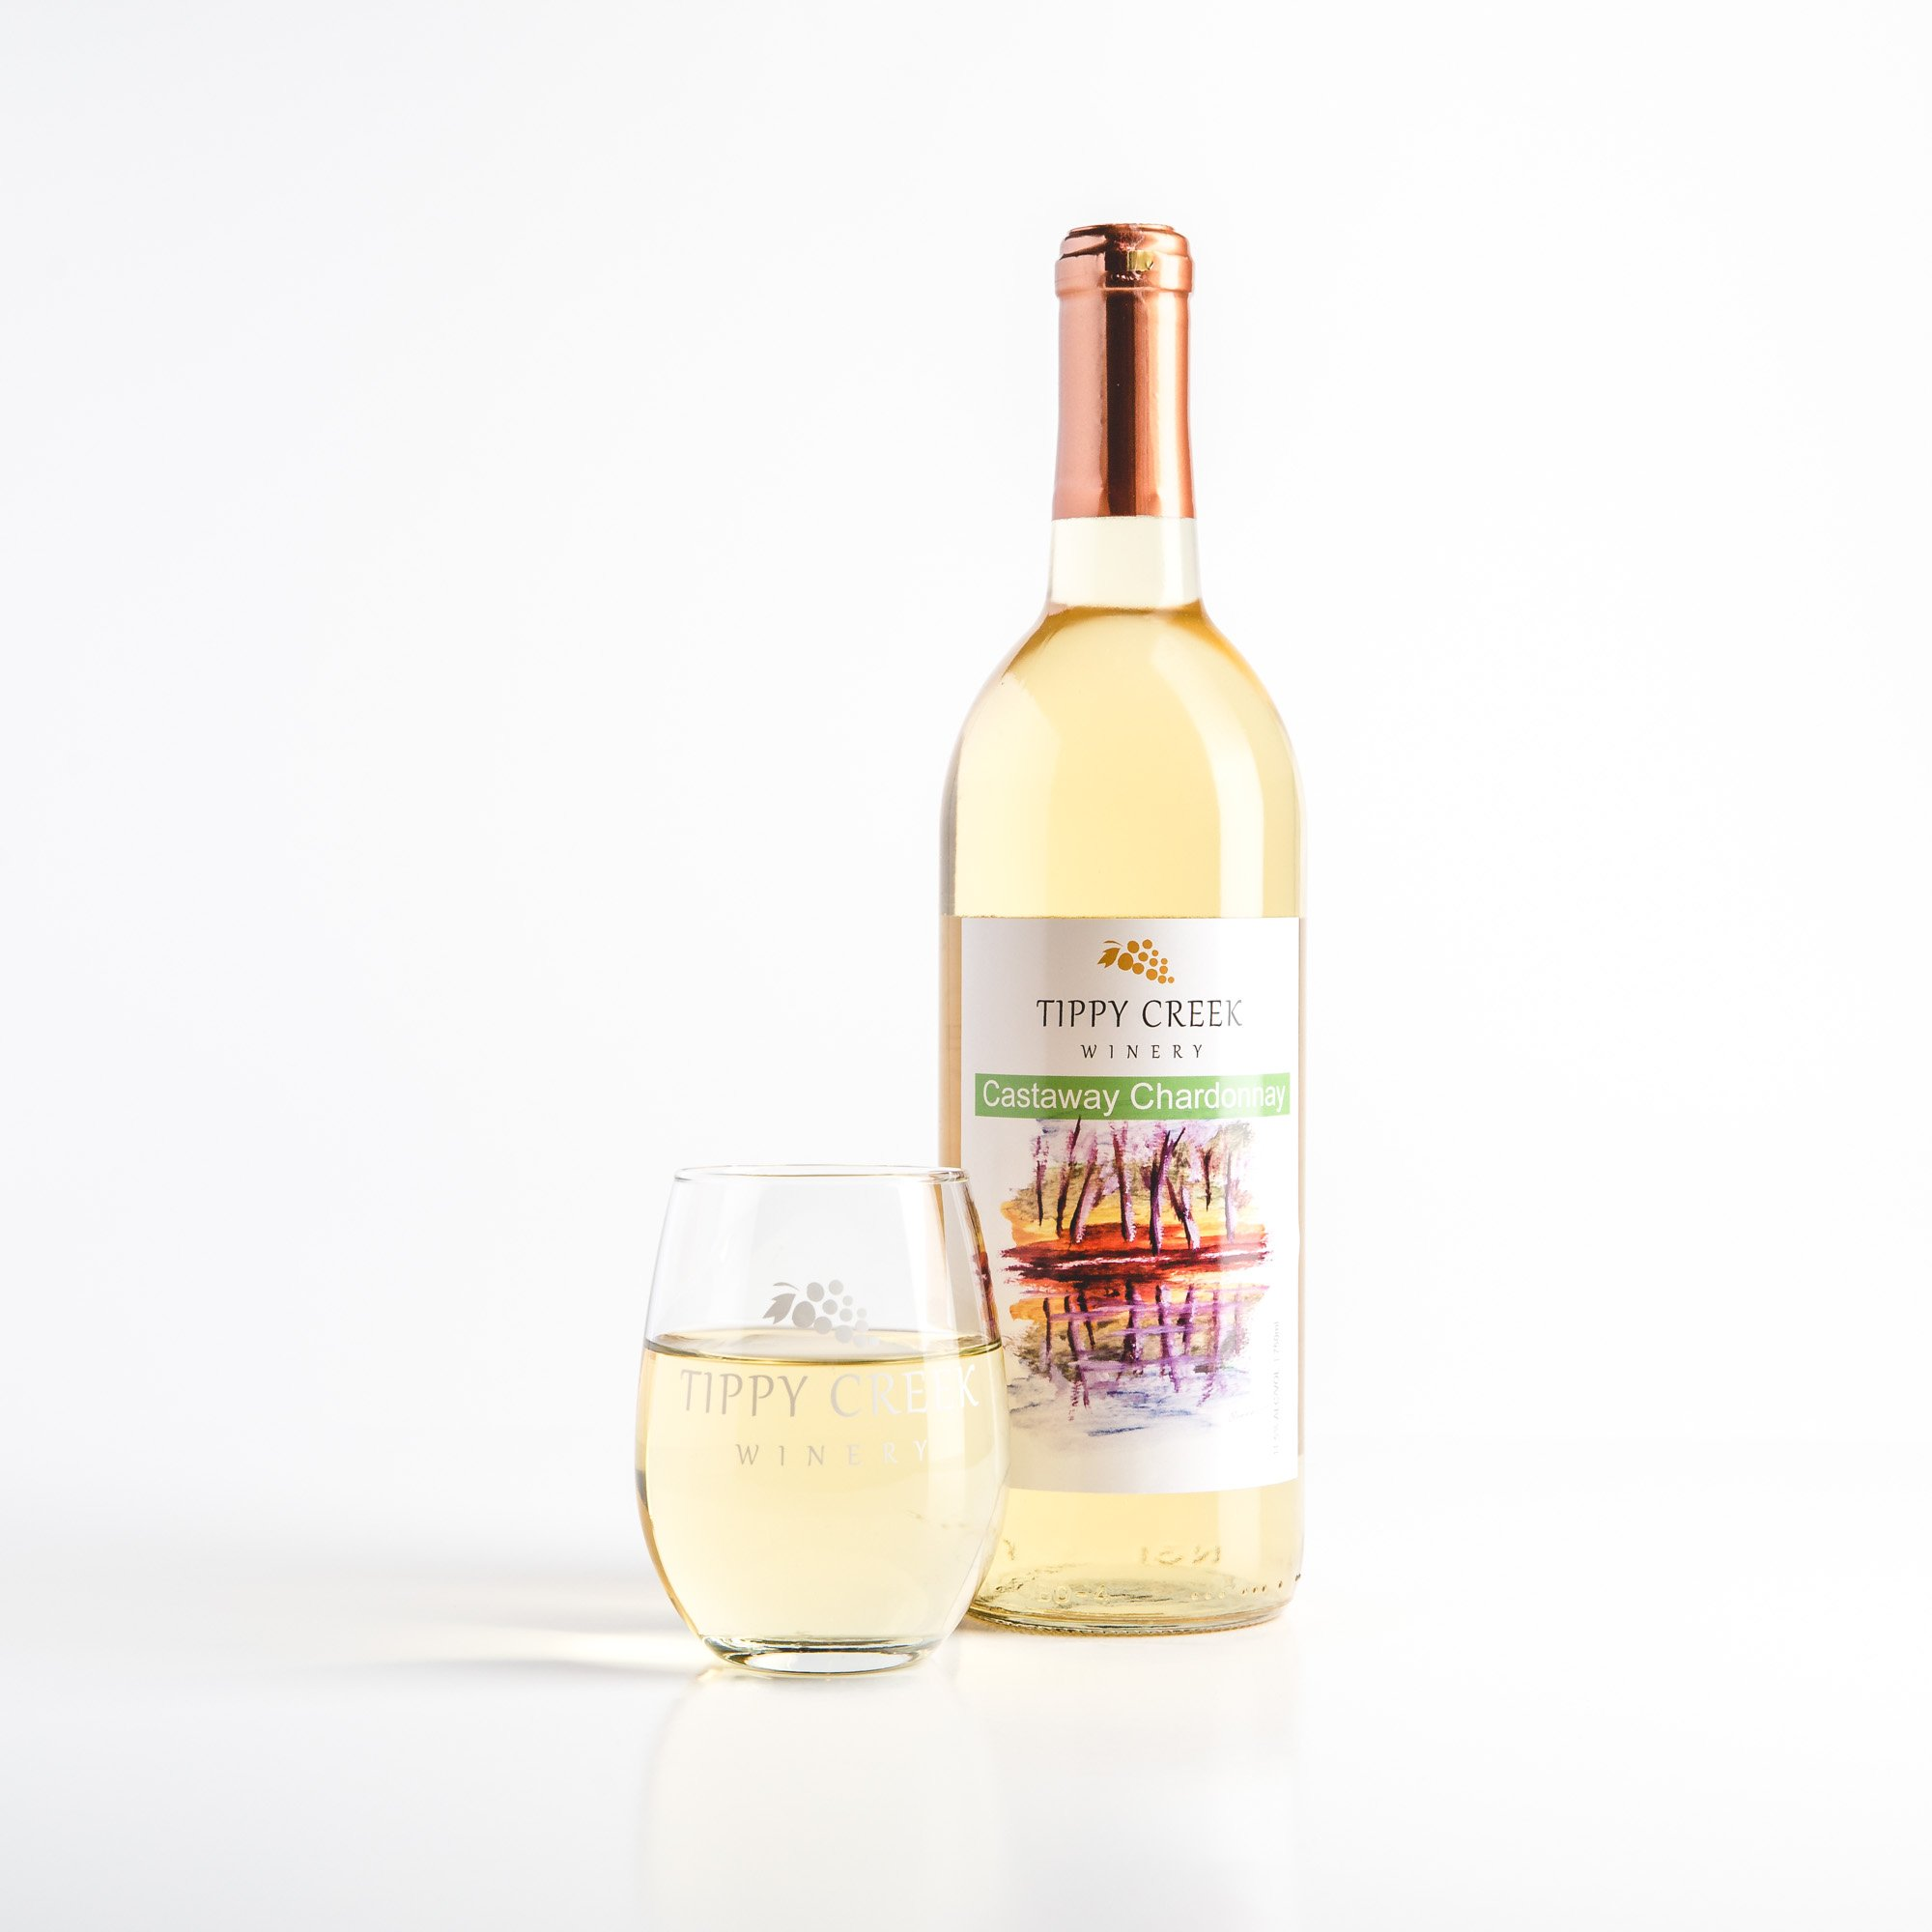 Castaway Chardonnay White Wine by Tippy Creek Winery